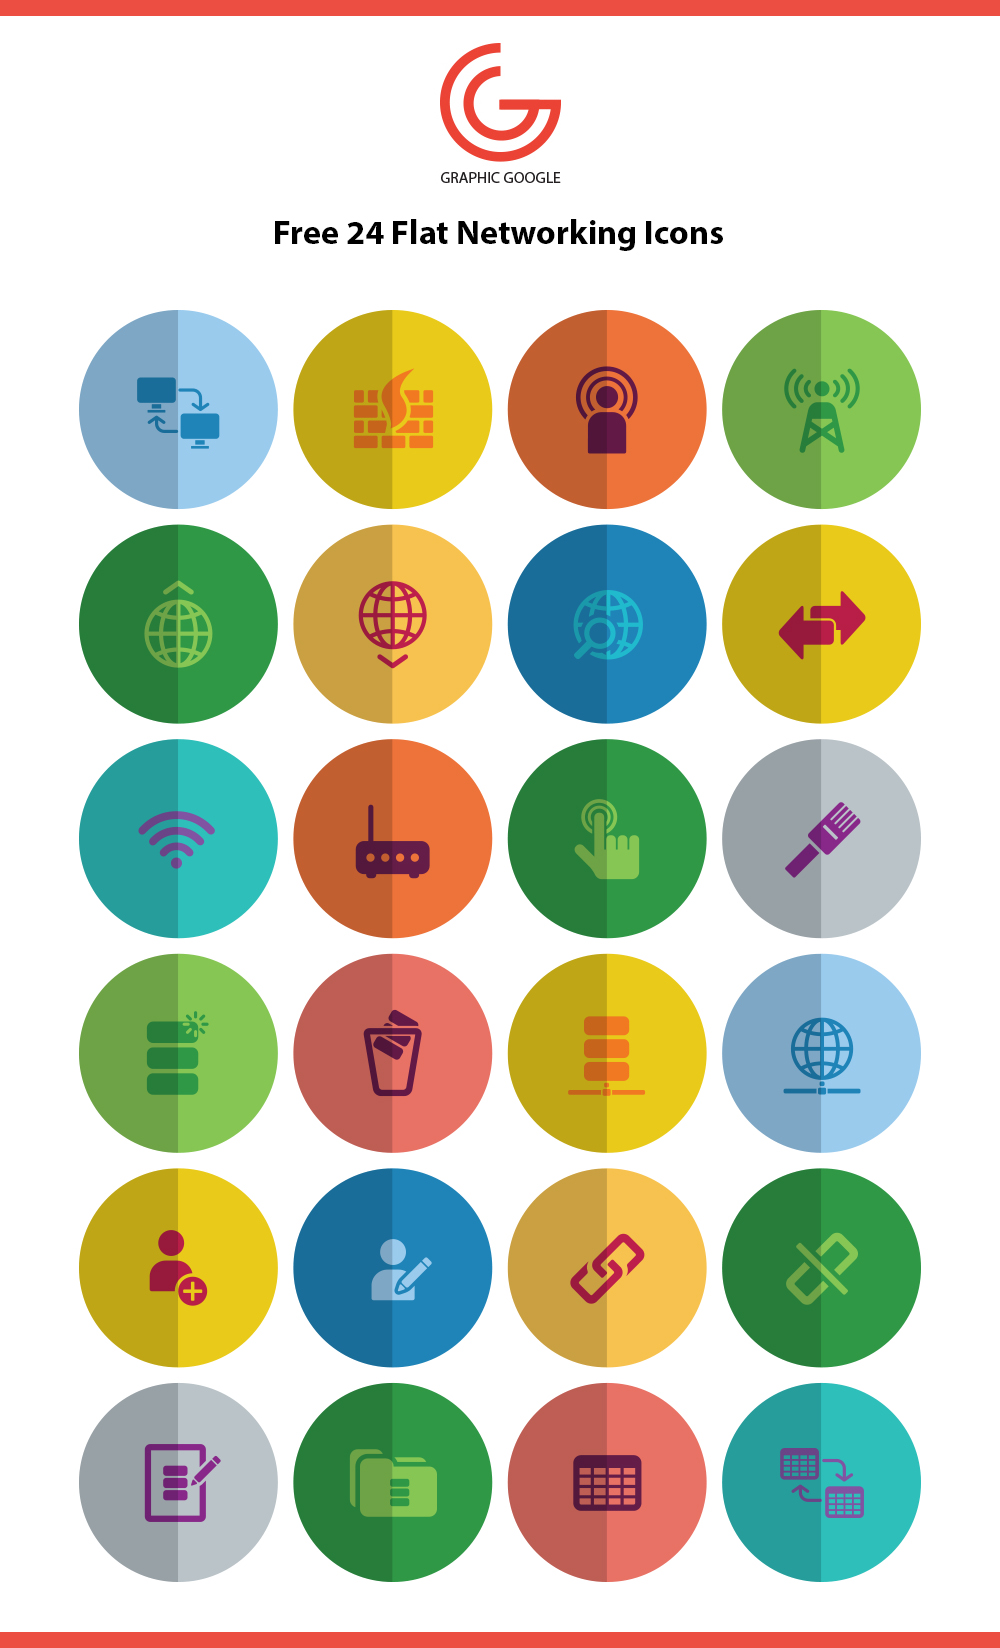 free-24-flat-networking-icons